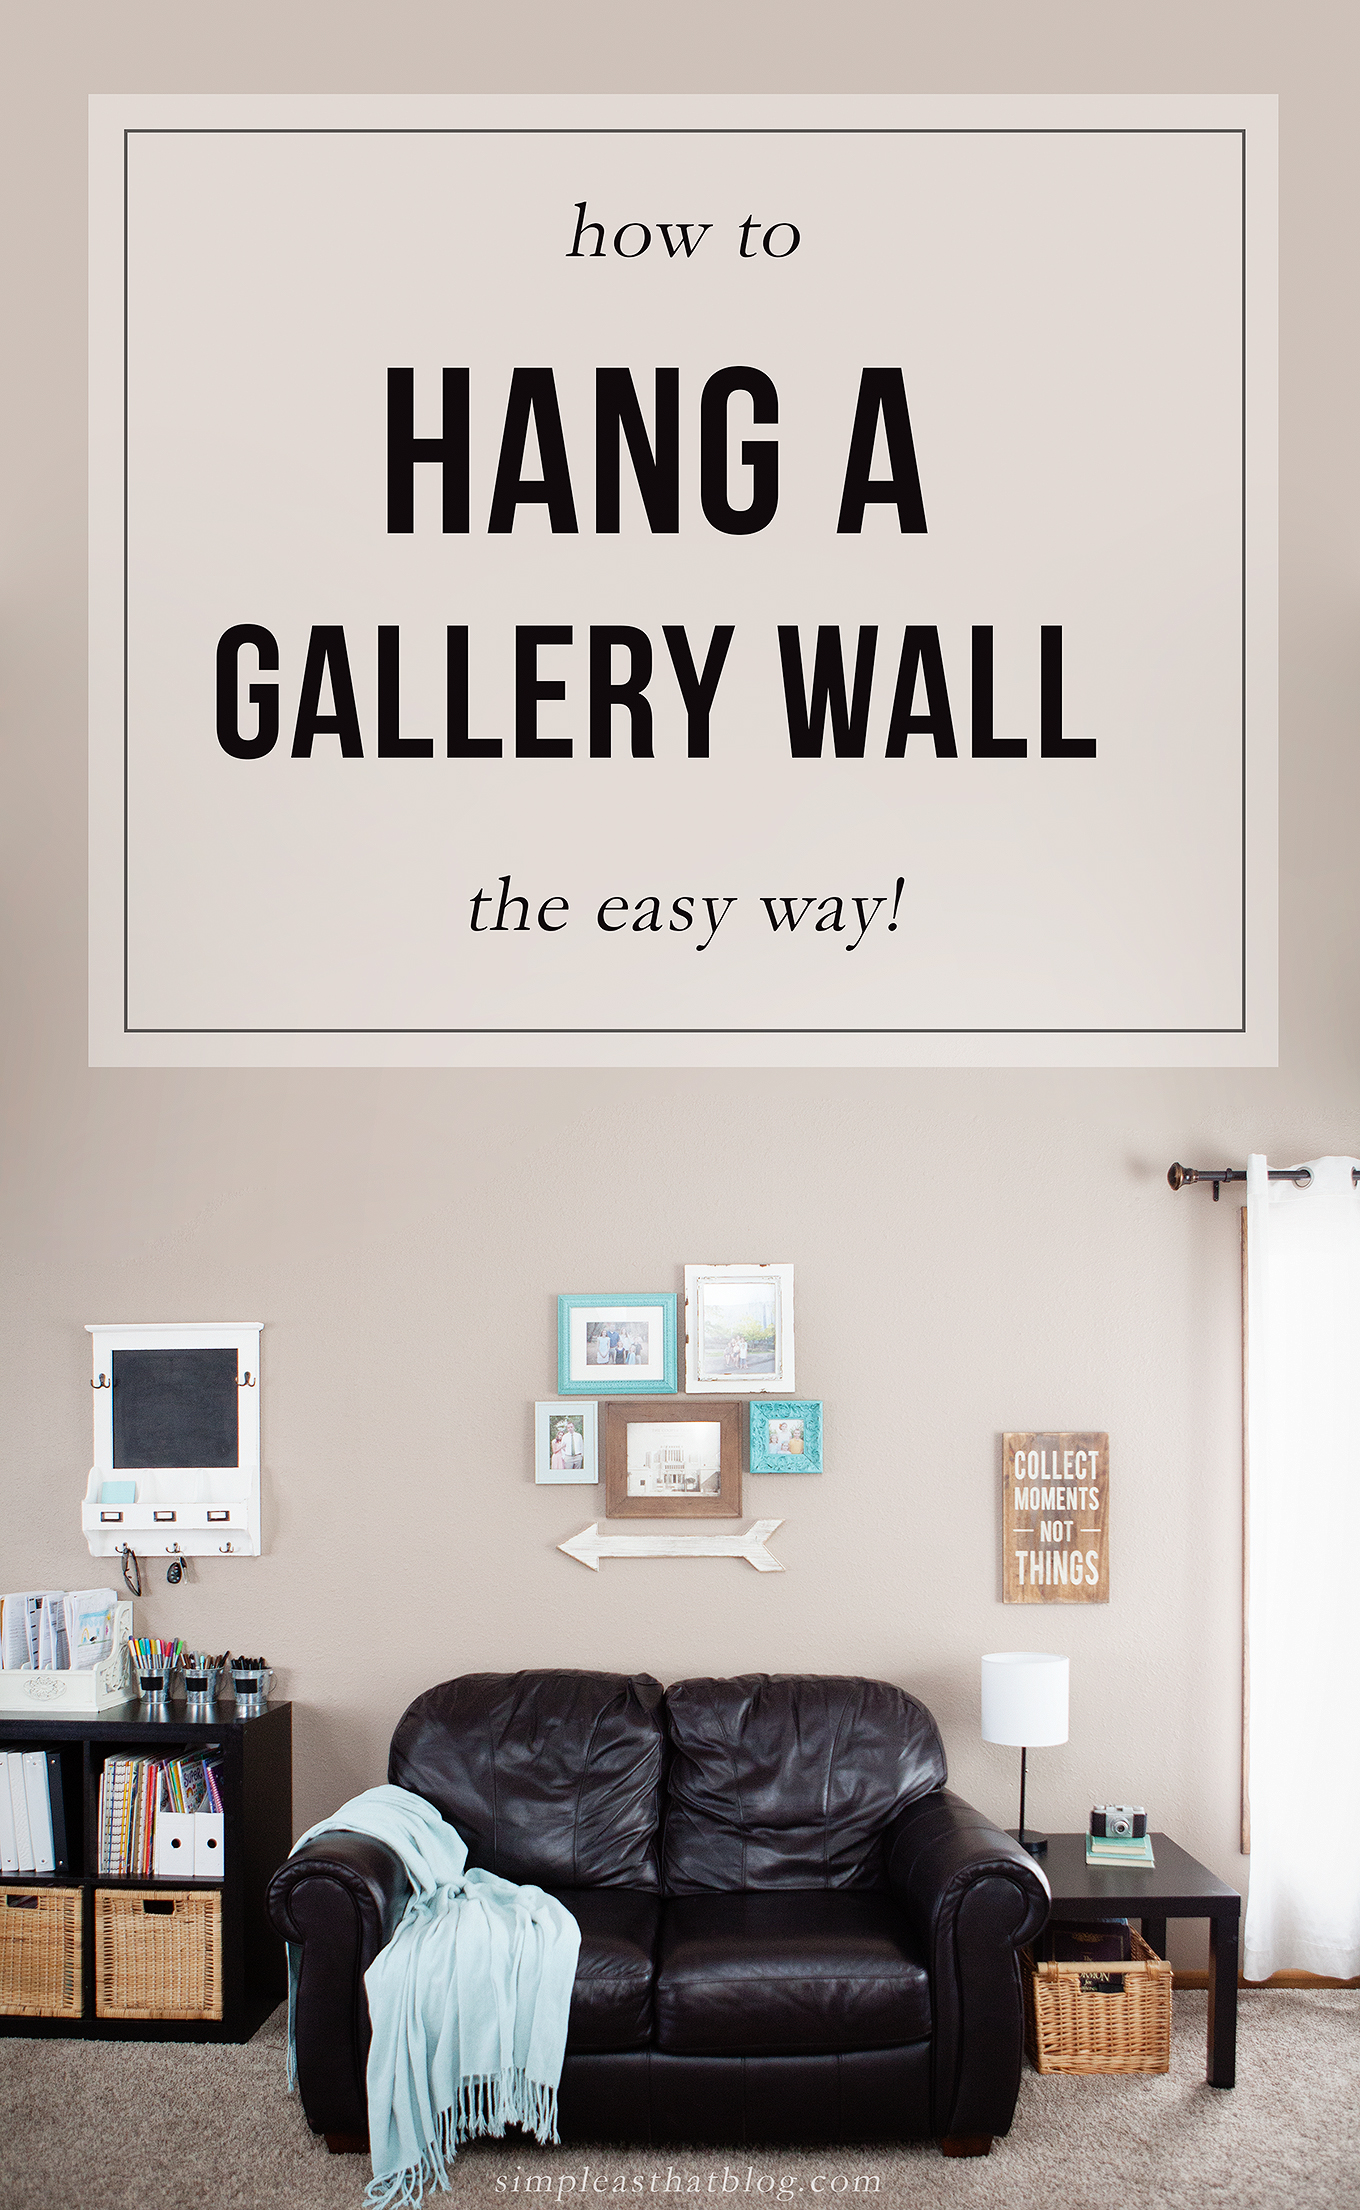 Have you always wanted to create a beautiful gallery wall display but didn't quite know where to start? Here is the secret to hanging a photo gallery wall the easy way!